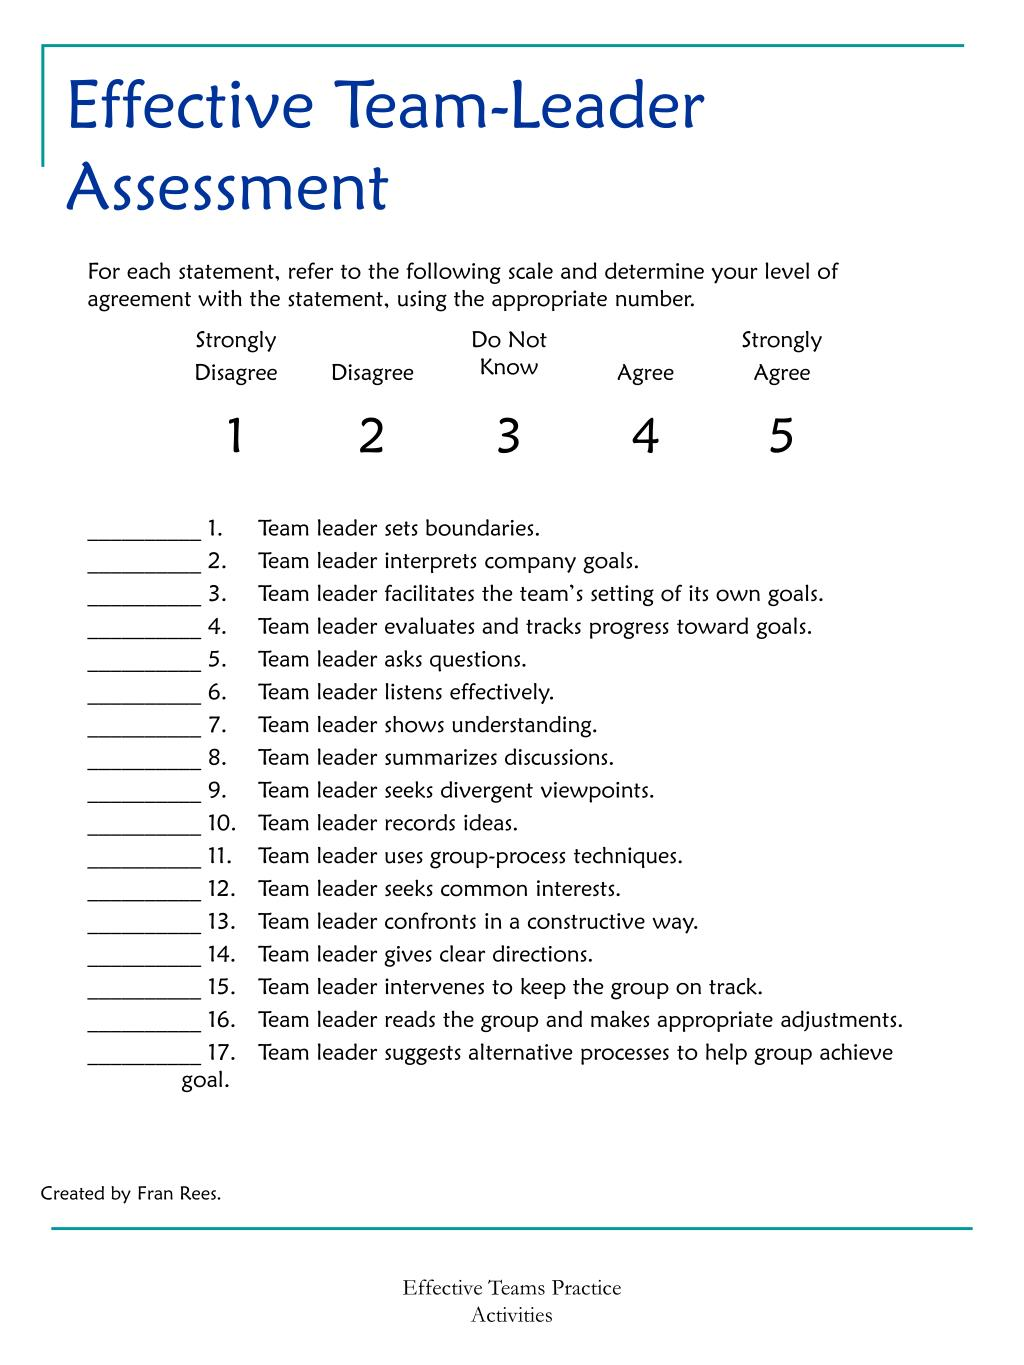 Effective Team-Leader Assessment